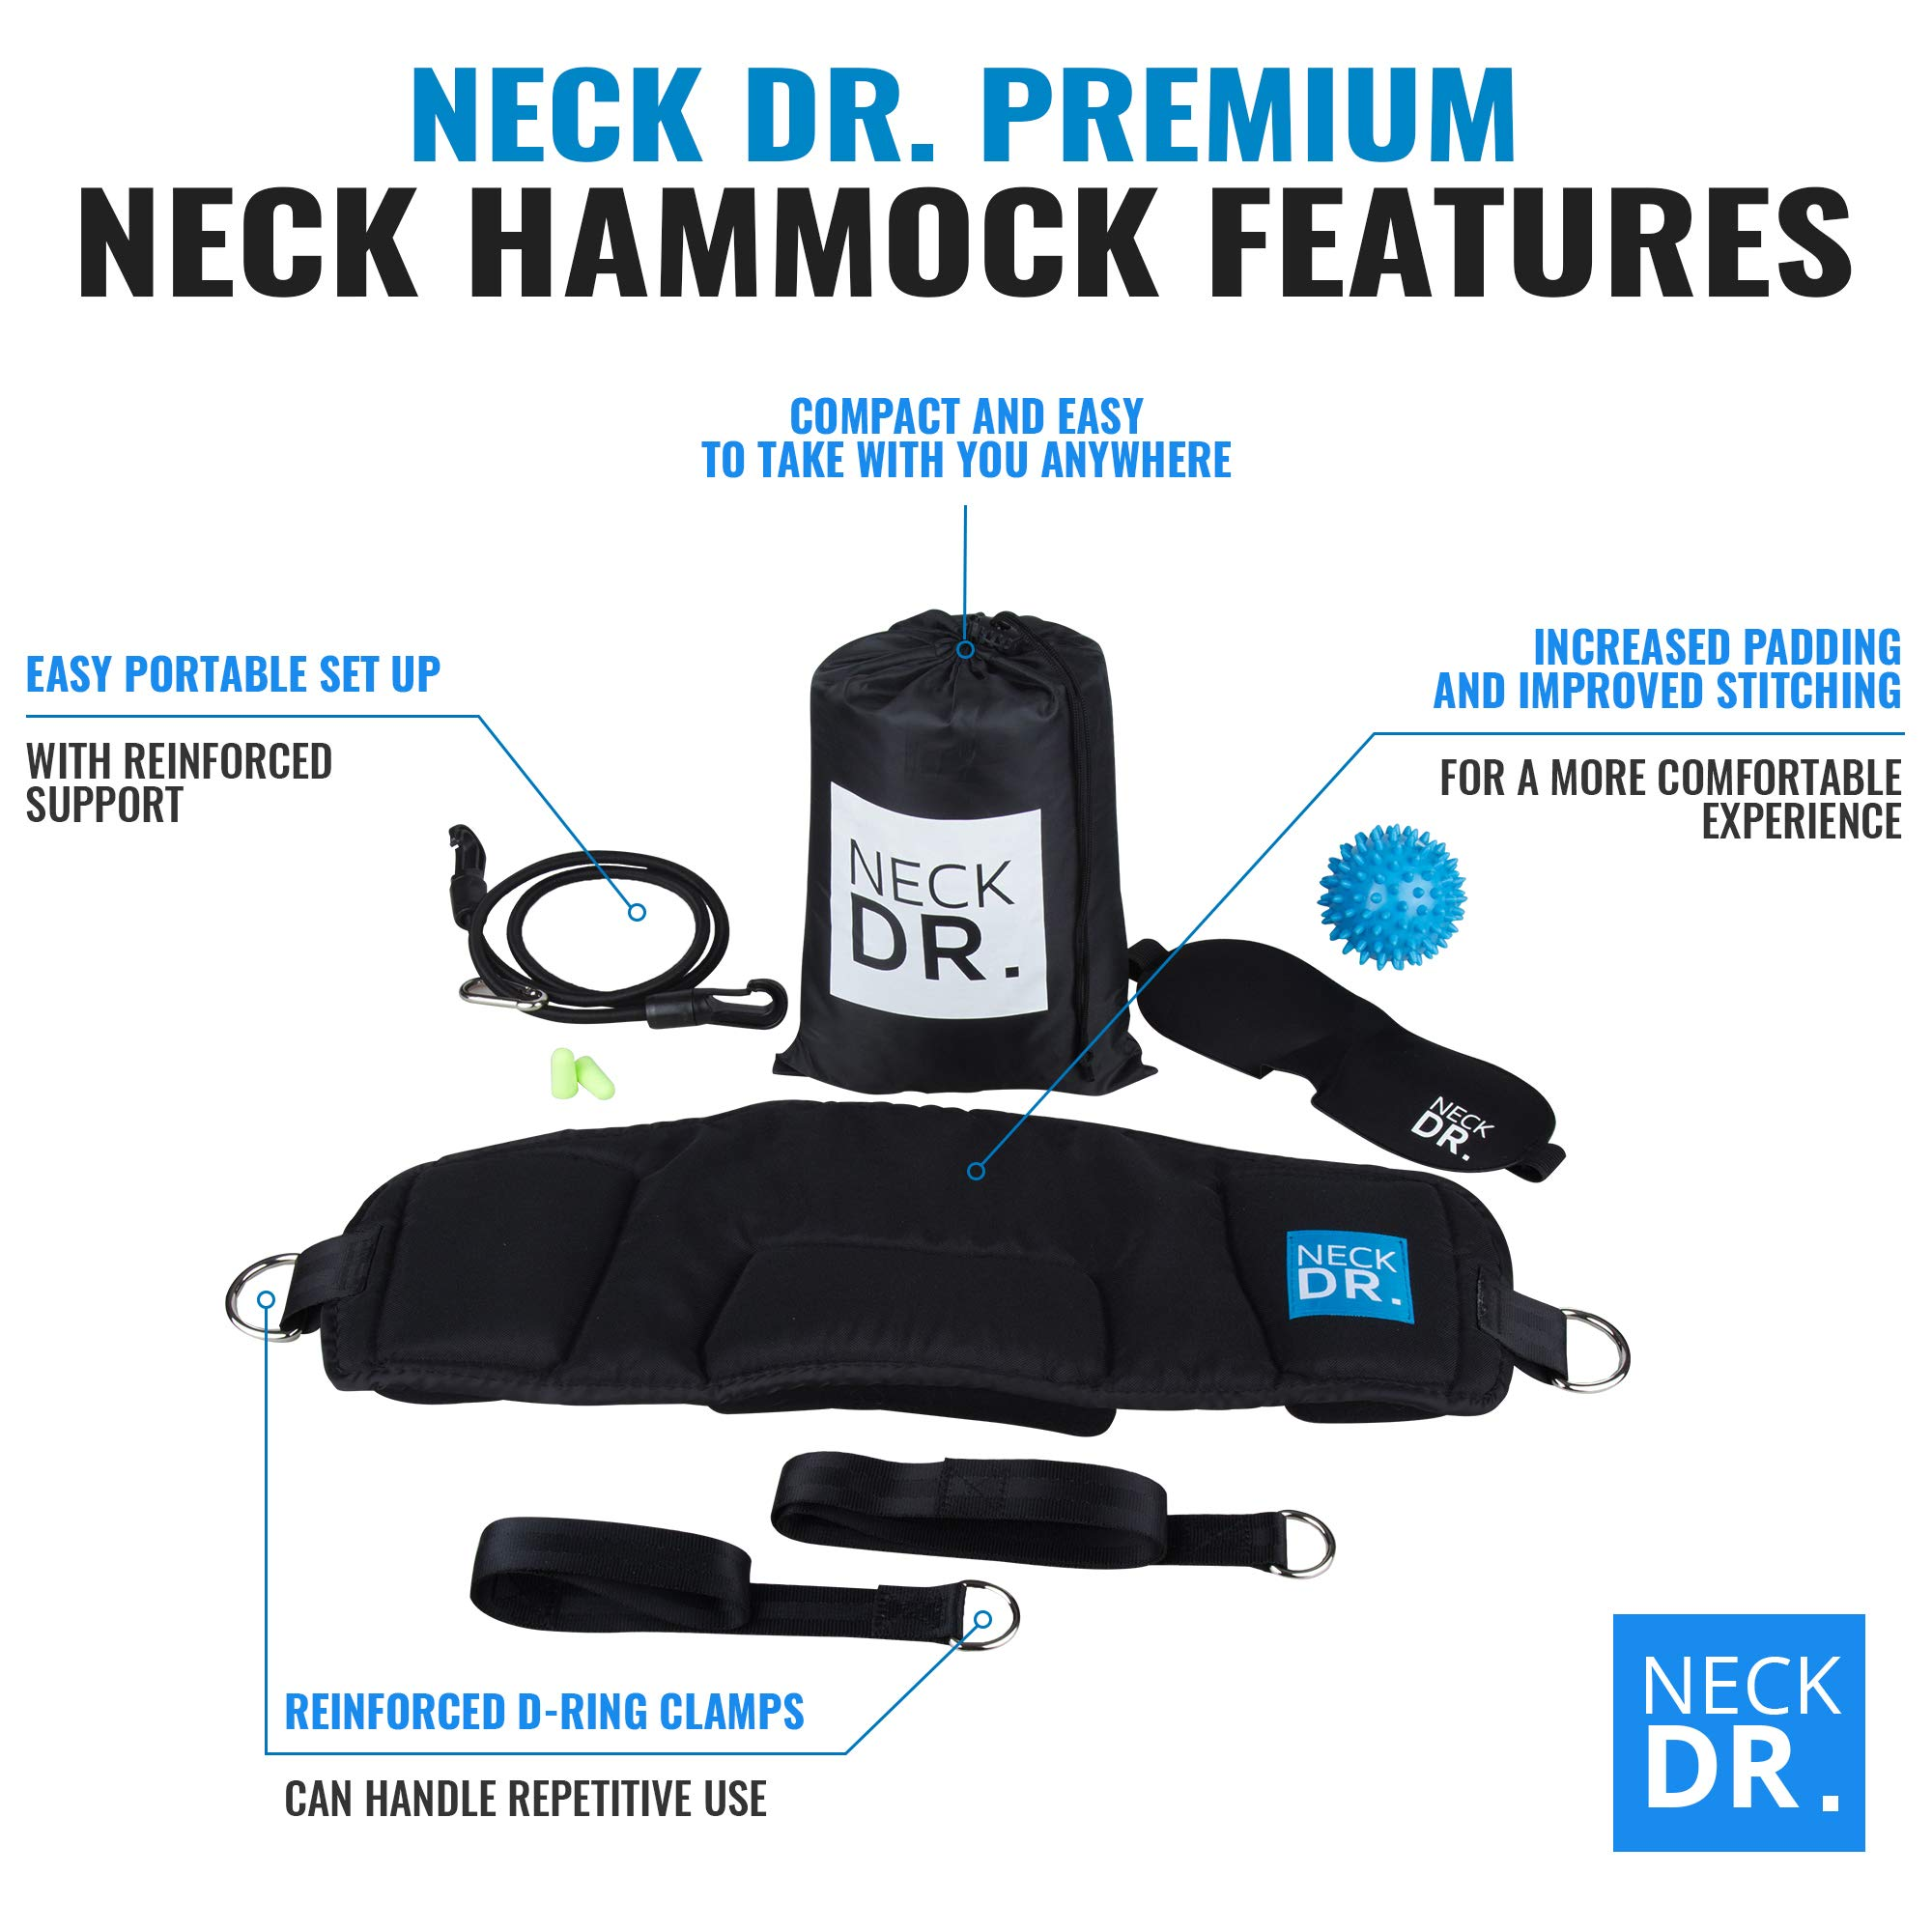 NECK DR. Premium Neck Hammock/Portable Traction Device – Neck Comfort, Cervical Compression Relief, Relaxation Device – Bonus Items: Neck Dr. Brand Eye Mask and Spiky Massage Ball by Neck Dr. (Image #4)